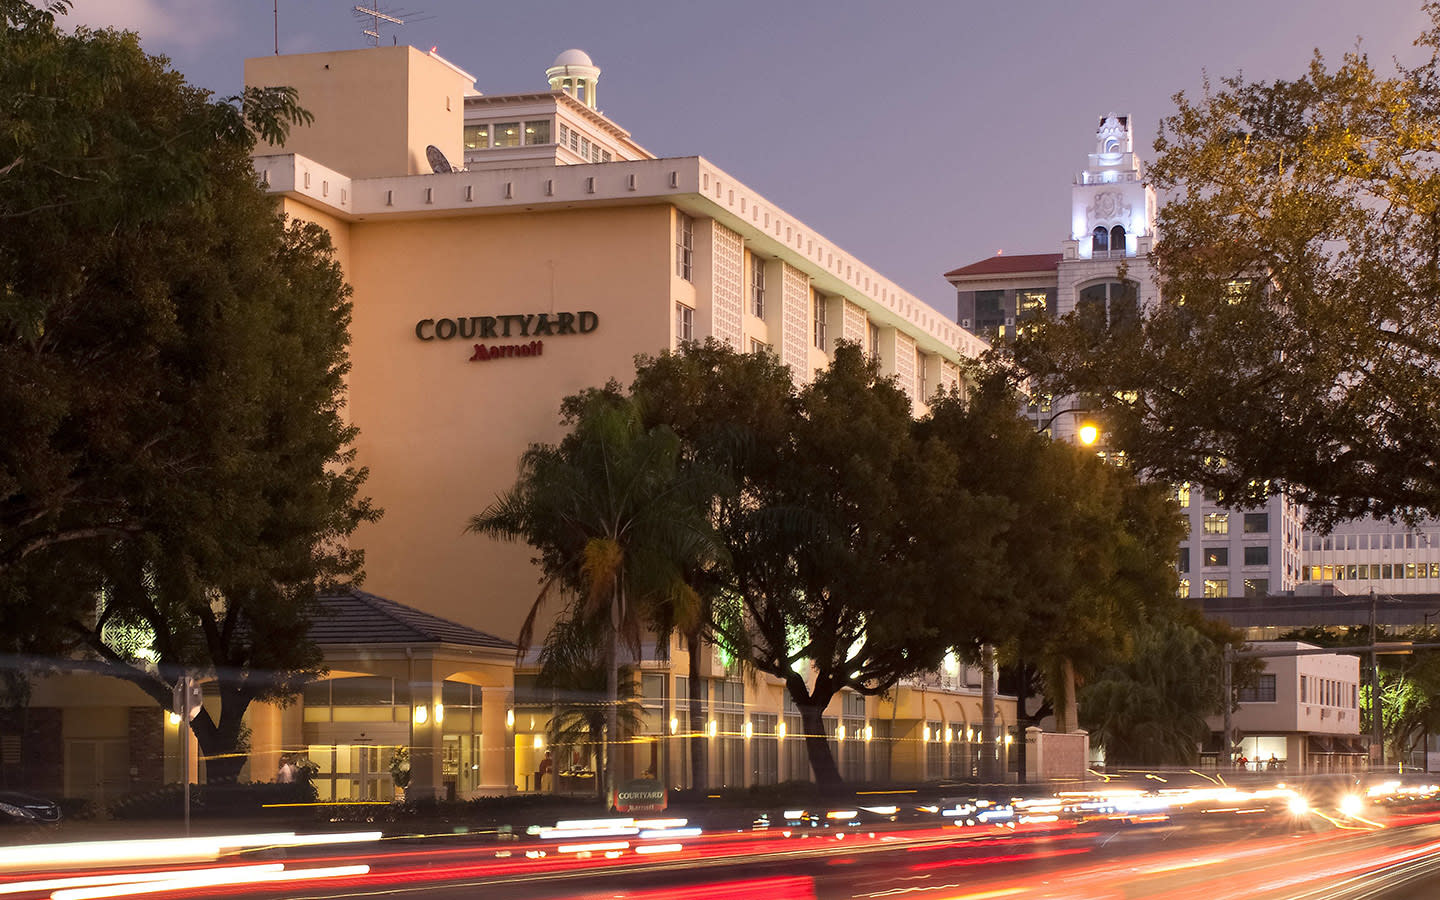 Courtyard by Marriott Coral Gables